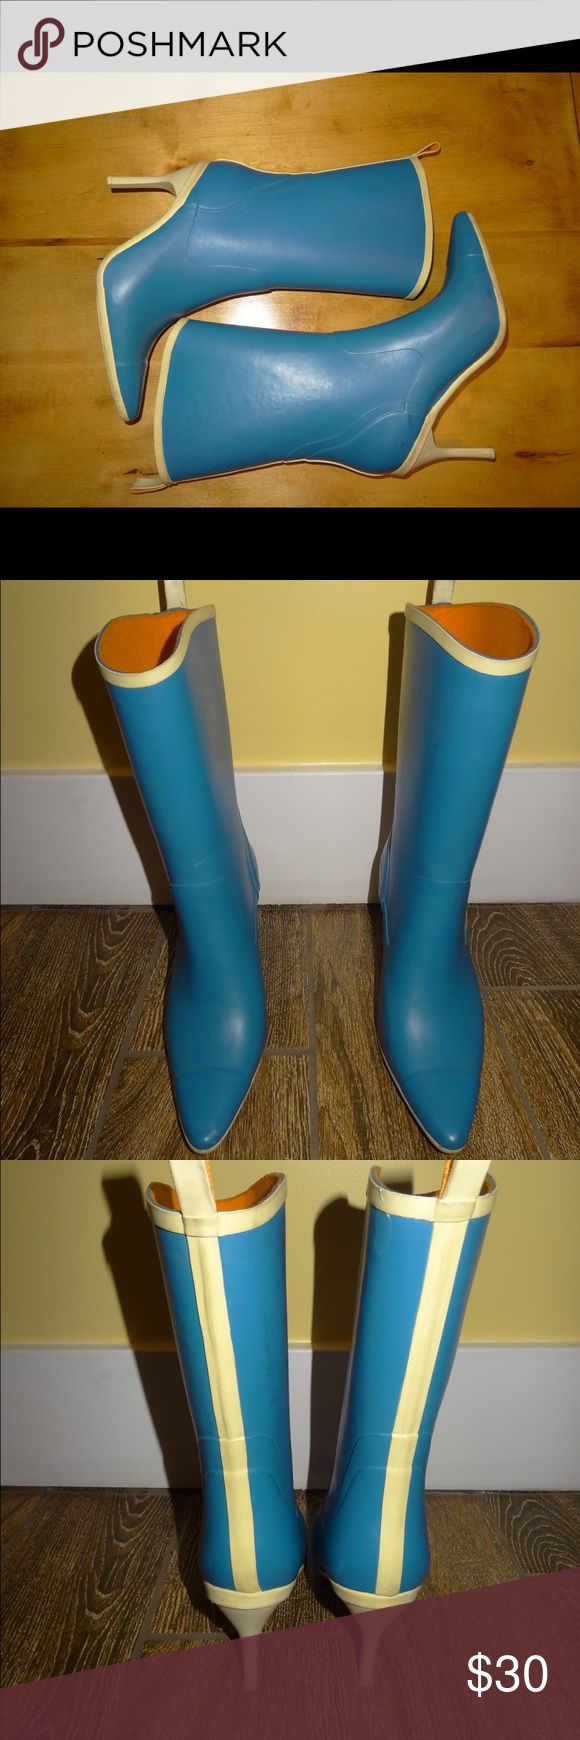 Kenneth Cole New York Blue Rubber Rain Boots 7 Kenneth Cole New York Blue Rubber Rain Boots High Heel Pointy Toe Mid Calf 7 Kenneth Cole Shoes Winter & Rain Boots